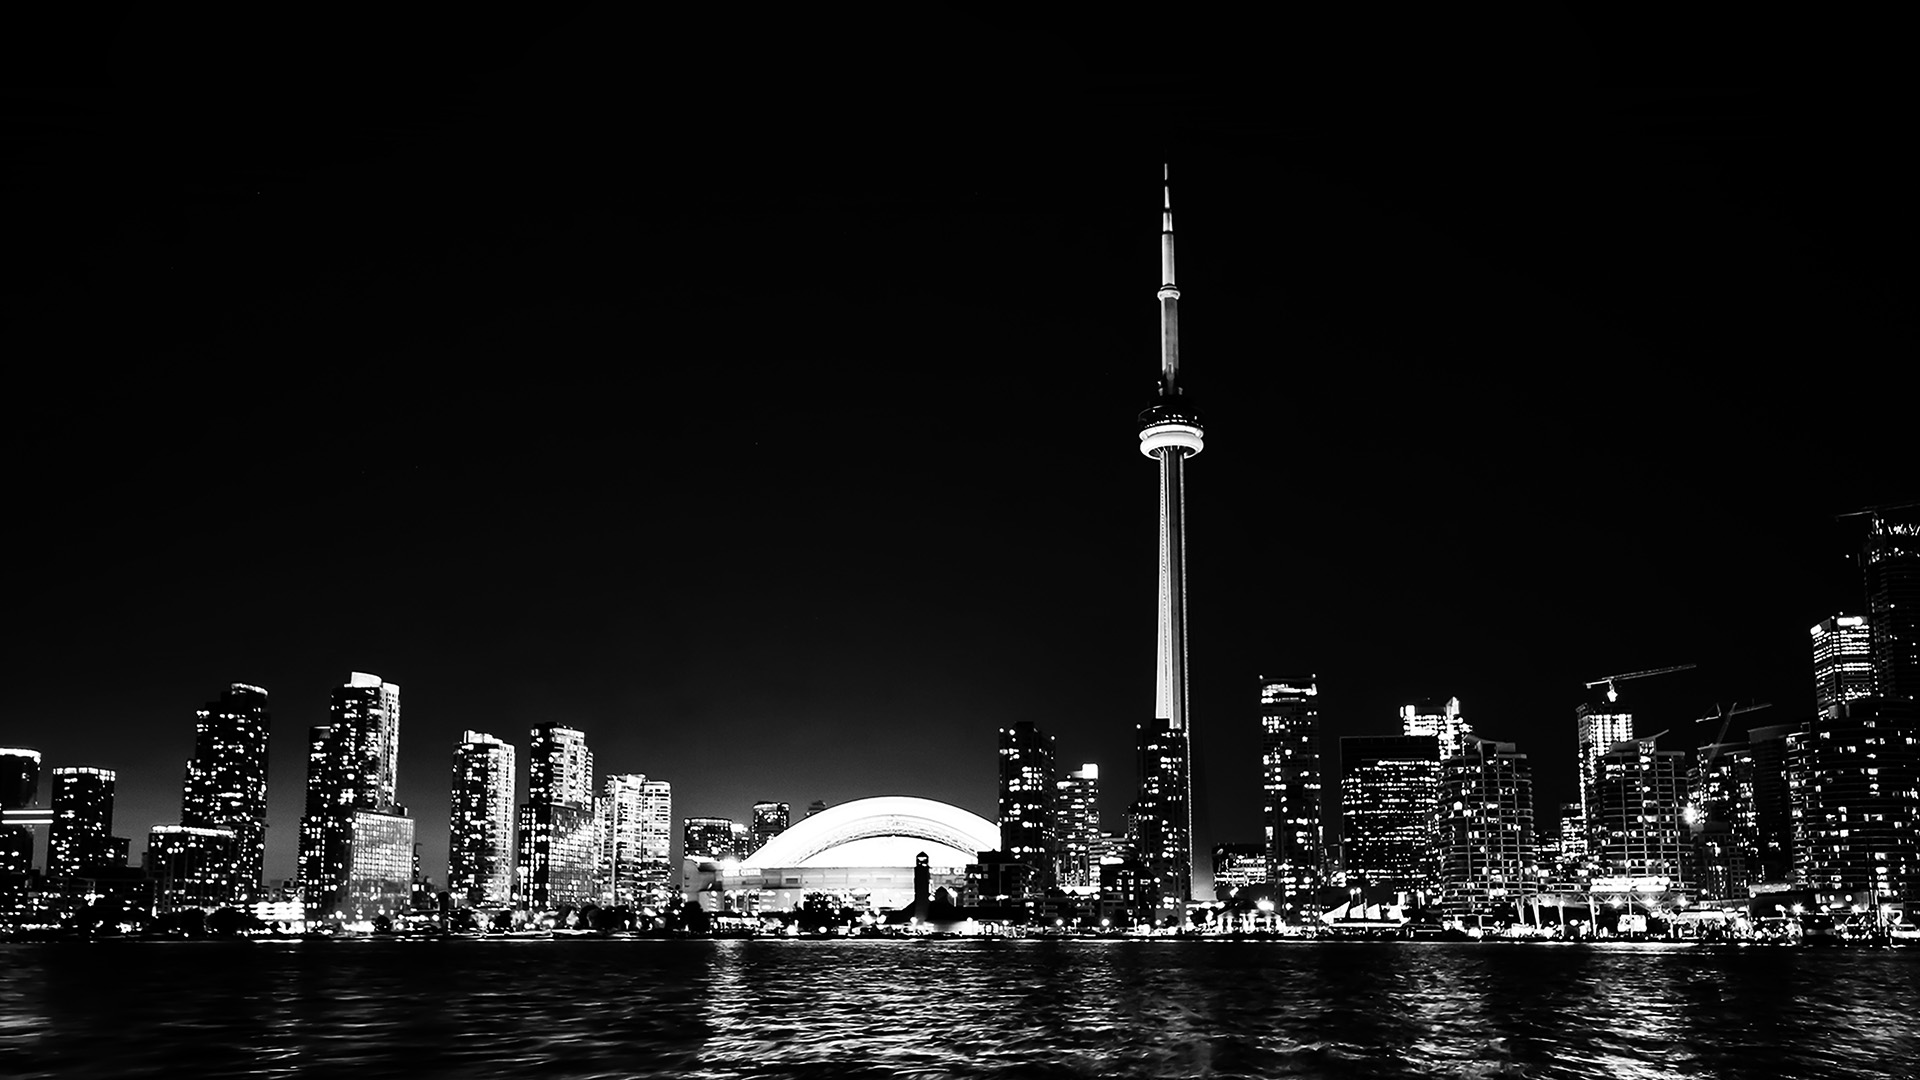 Space Hd Wallpapers 1080p Mt45 Toronto City Night Missing Tower Dark Cityview Bw